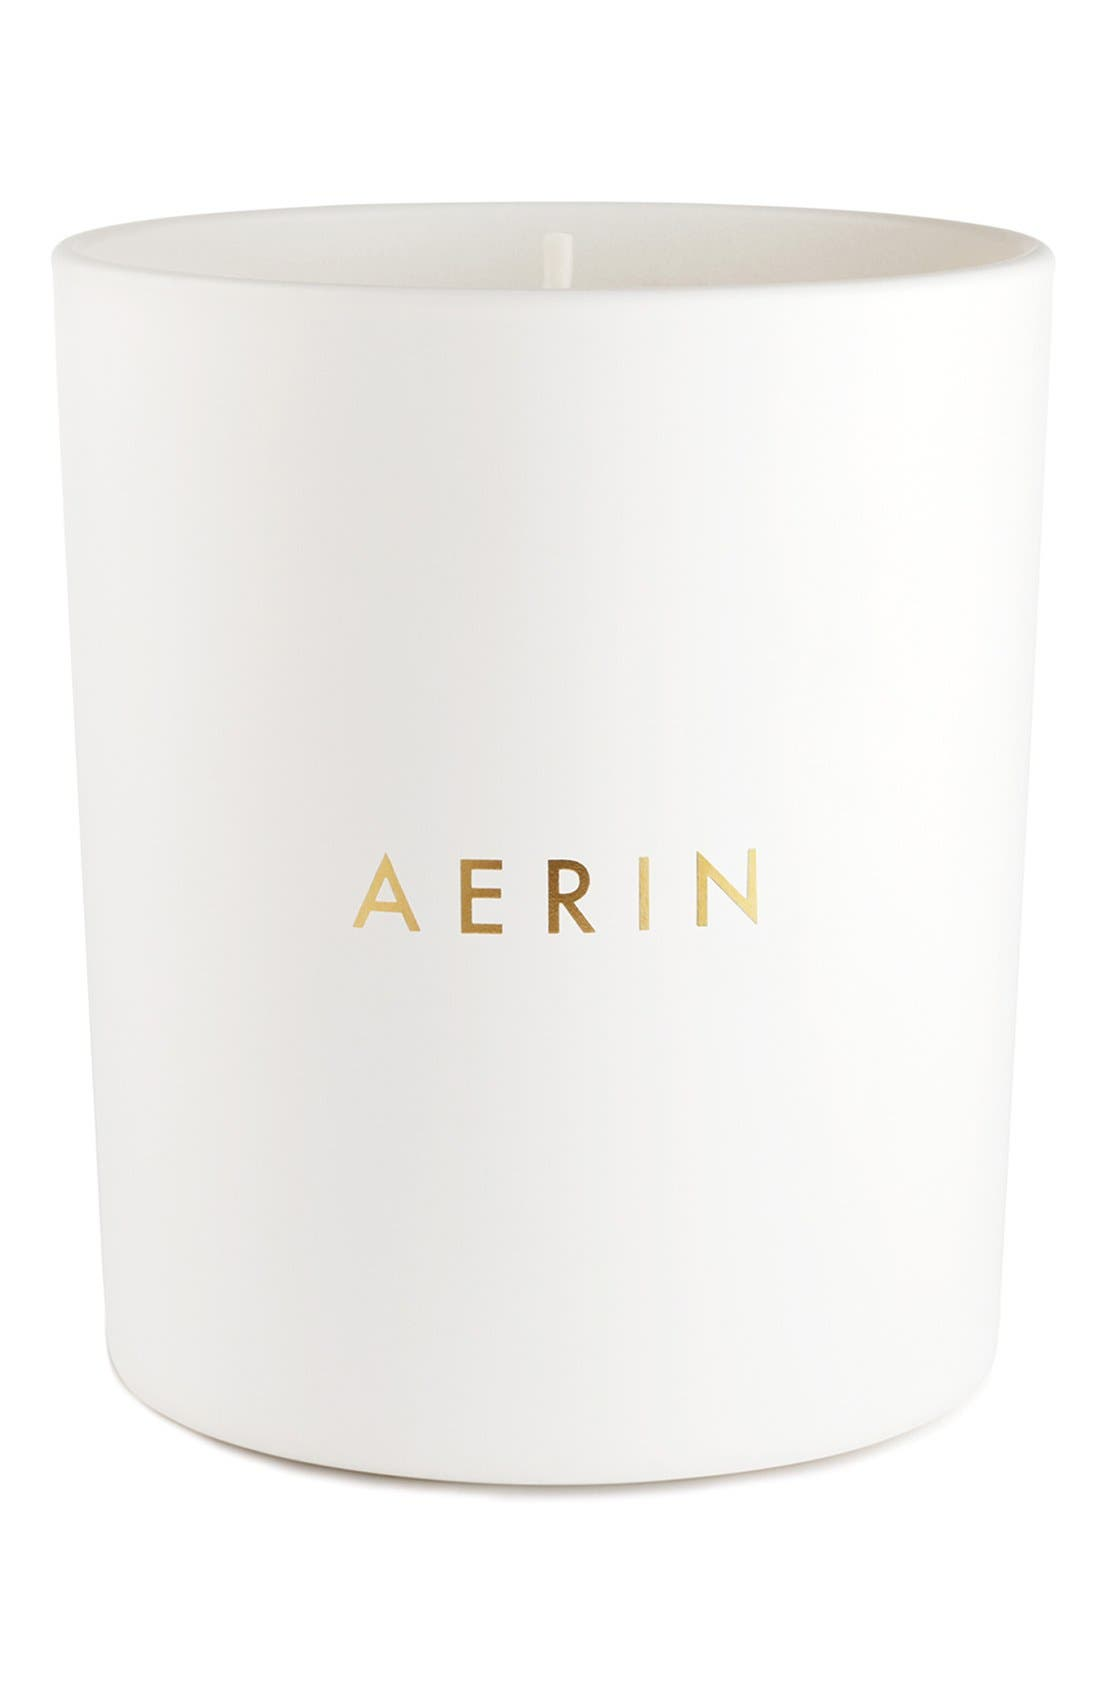 AERIN Beauty Rose de Grasse Candle (Limited Edition)